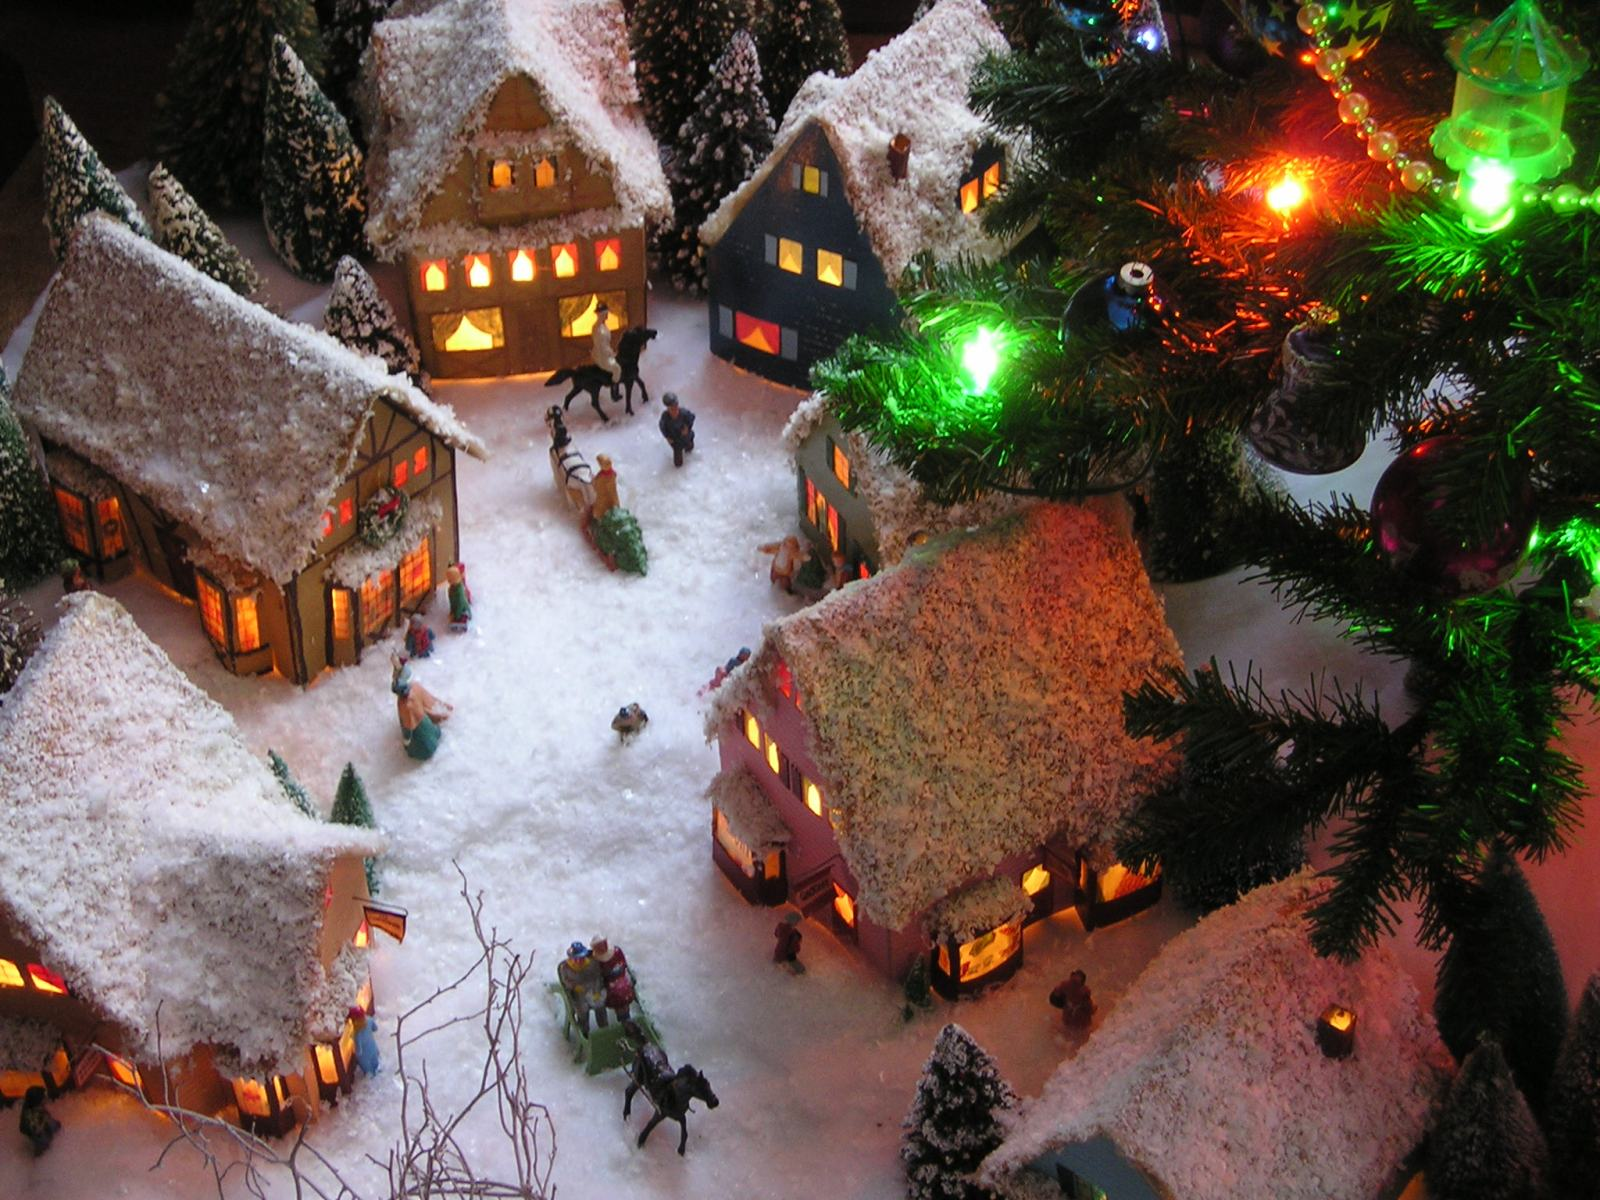 Download Christmas Village Wallpapers in HD from 2015 1600x1200